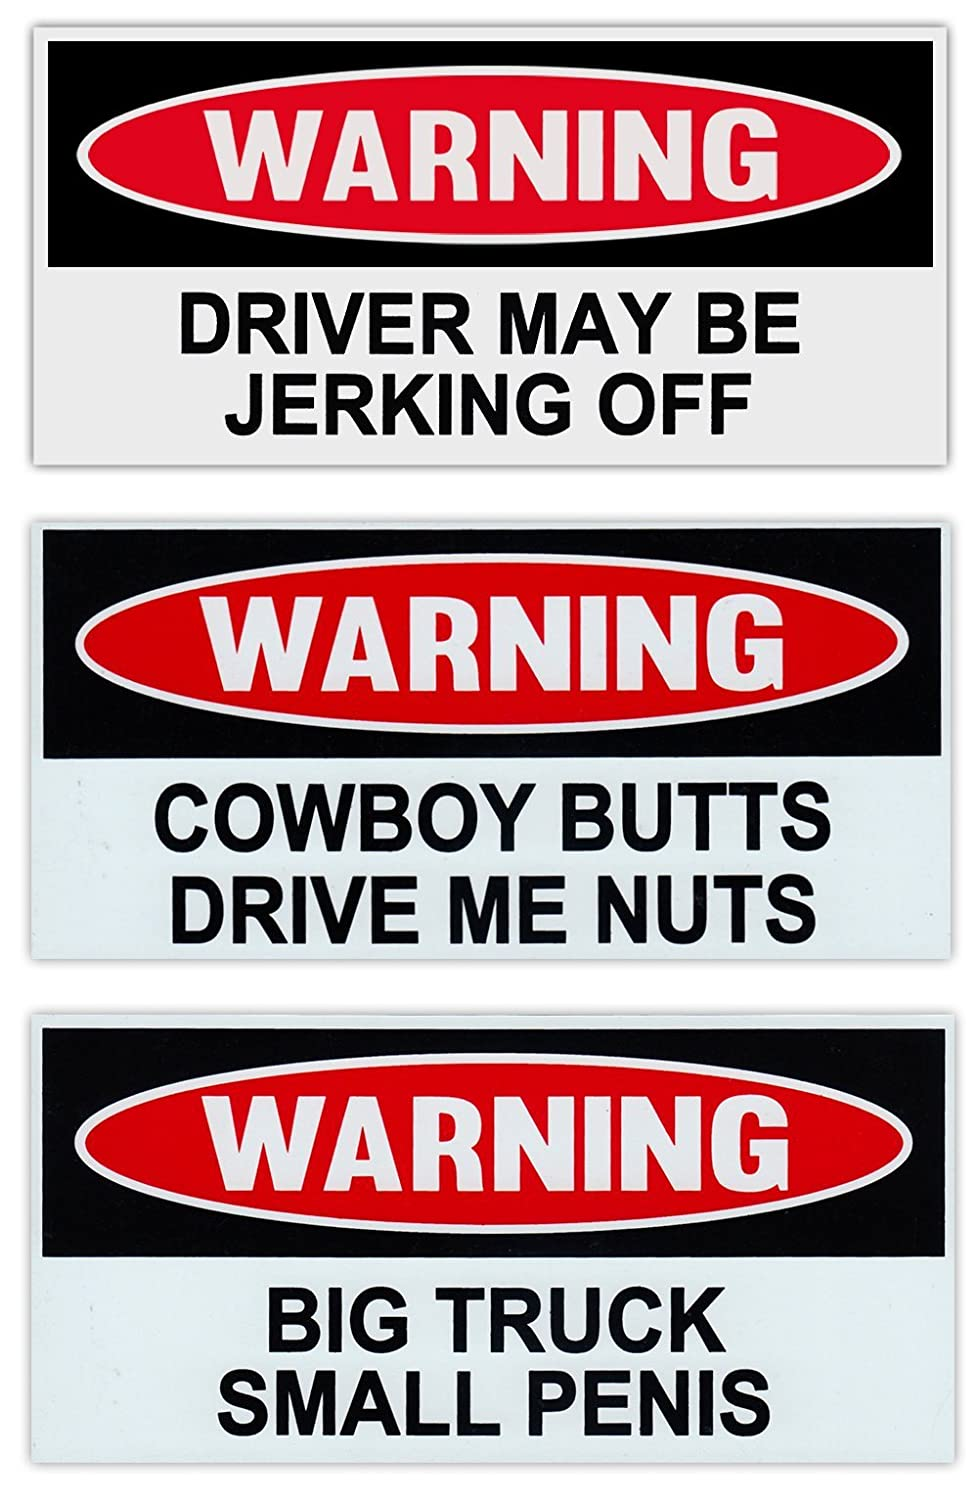 Funny Warning Magnets - Practical Joke Combo Kit - 3 Magnets - Jokes, Gags, Pranks - Slap these on your friend's car/truck and sit back and laugh!